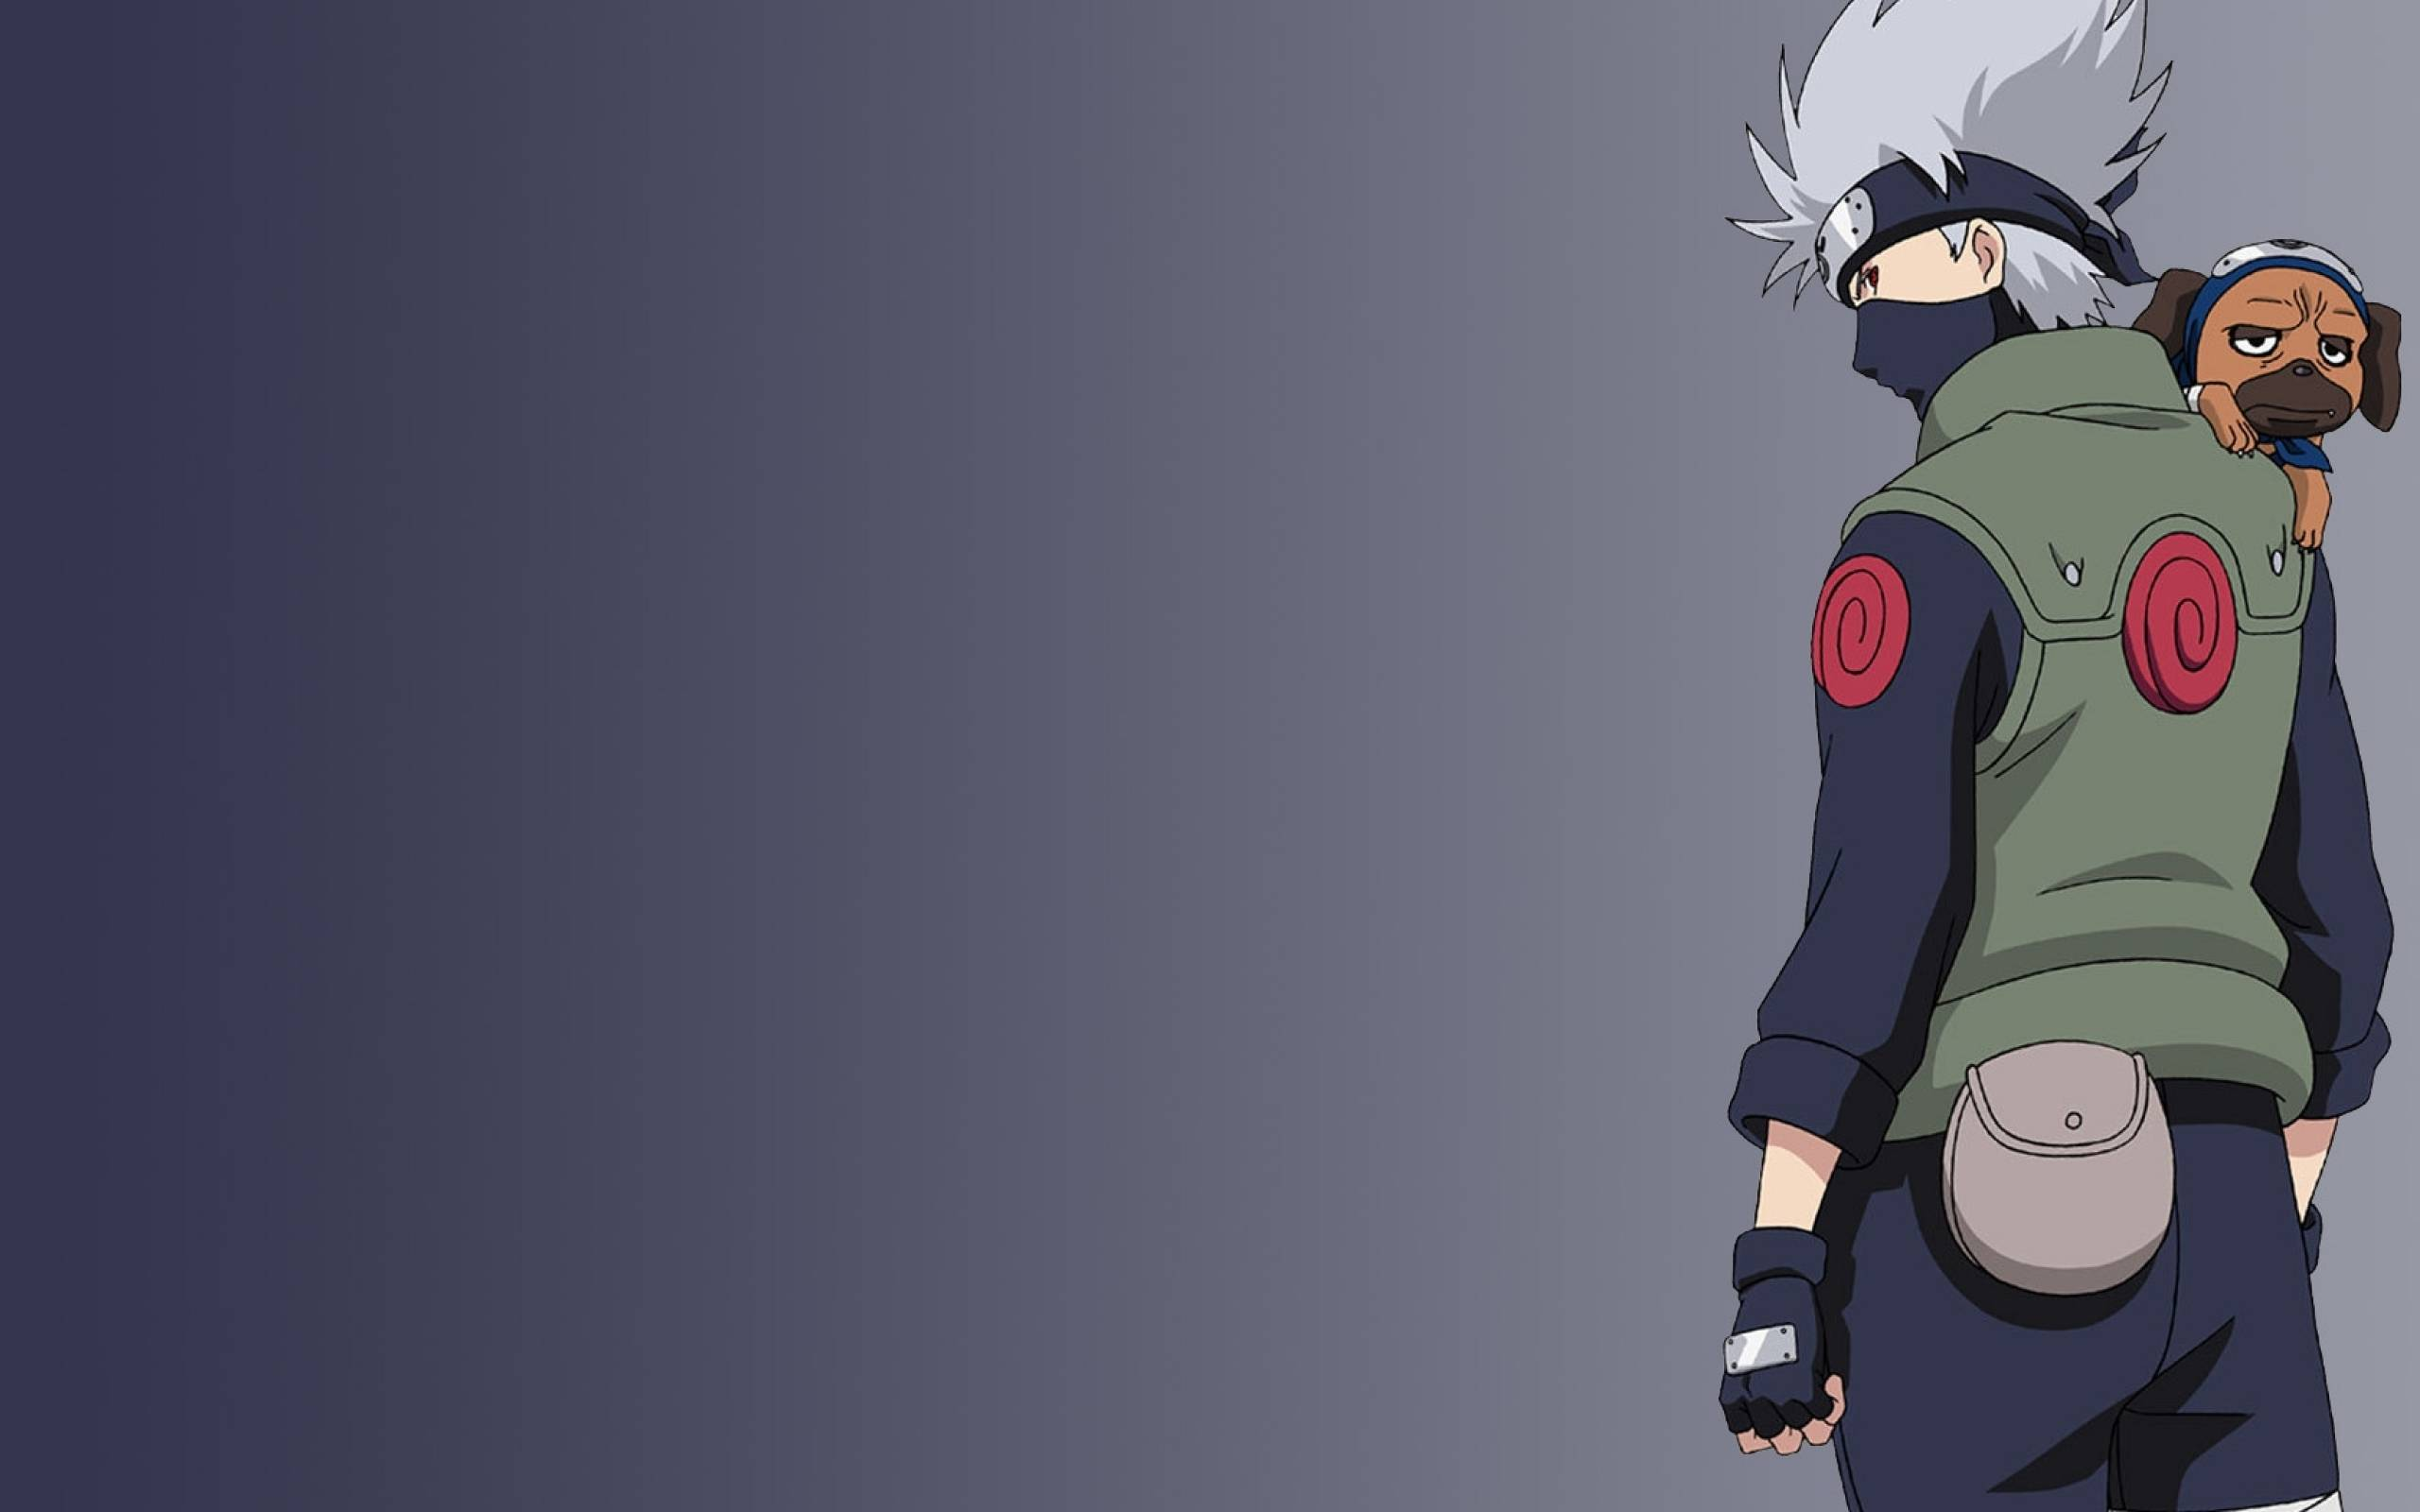 Anime Aesthetic Kakashi Desktop Wallpapers Wallpaper Cave